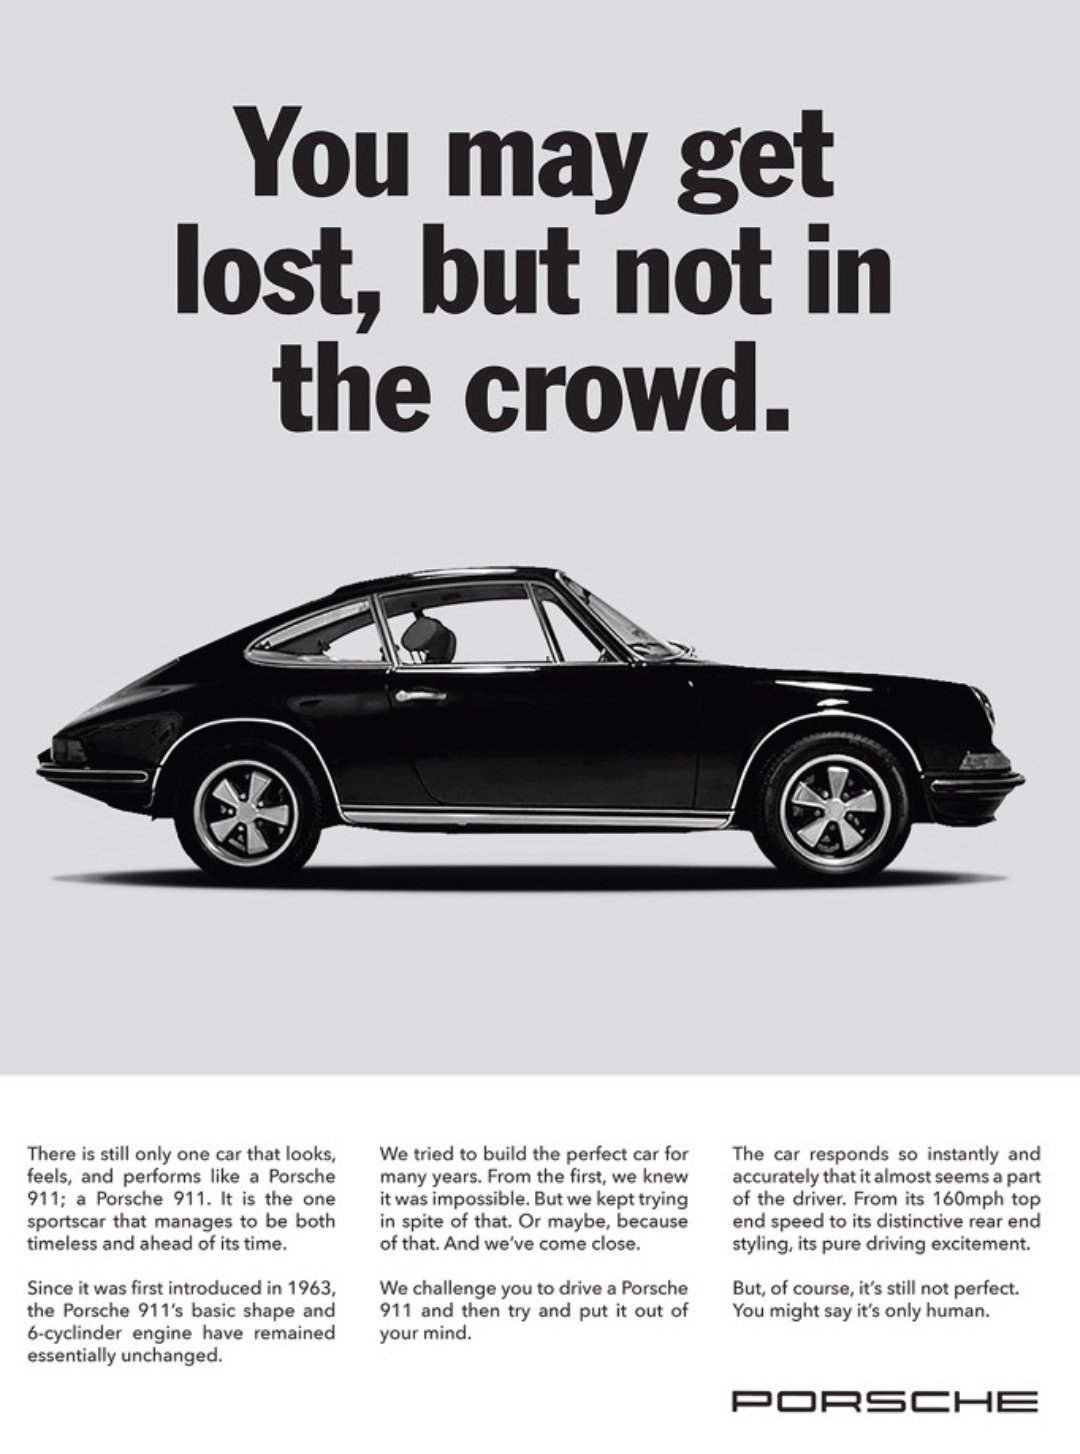 The Best Porsche Ads of All Time: You May Get Lost